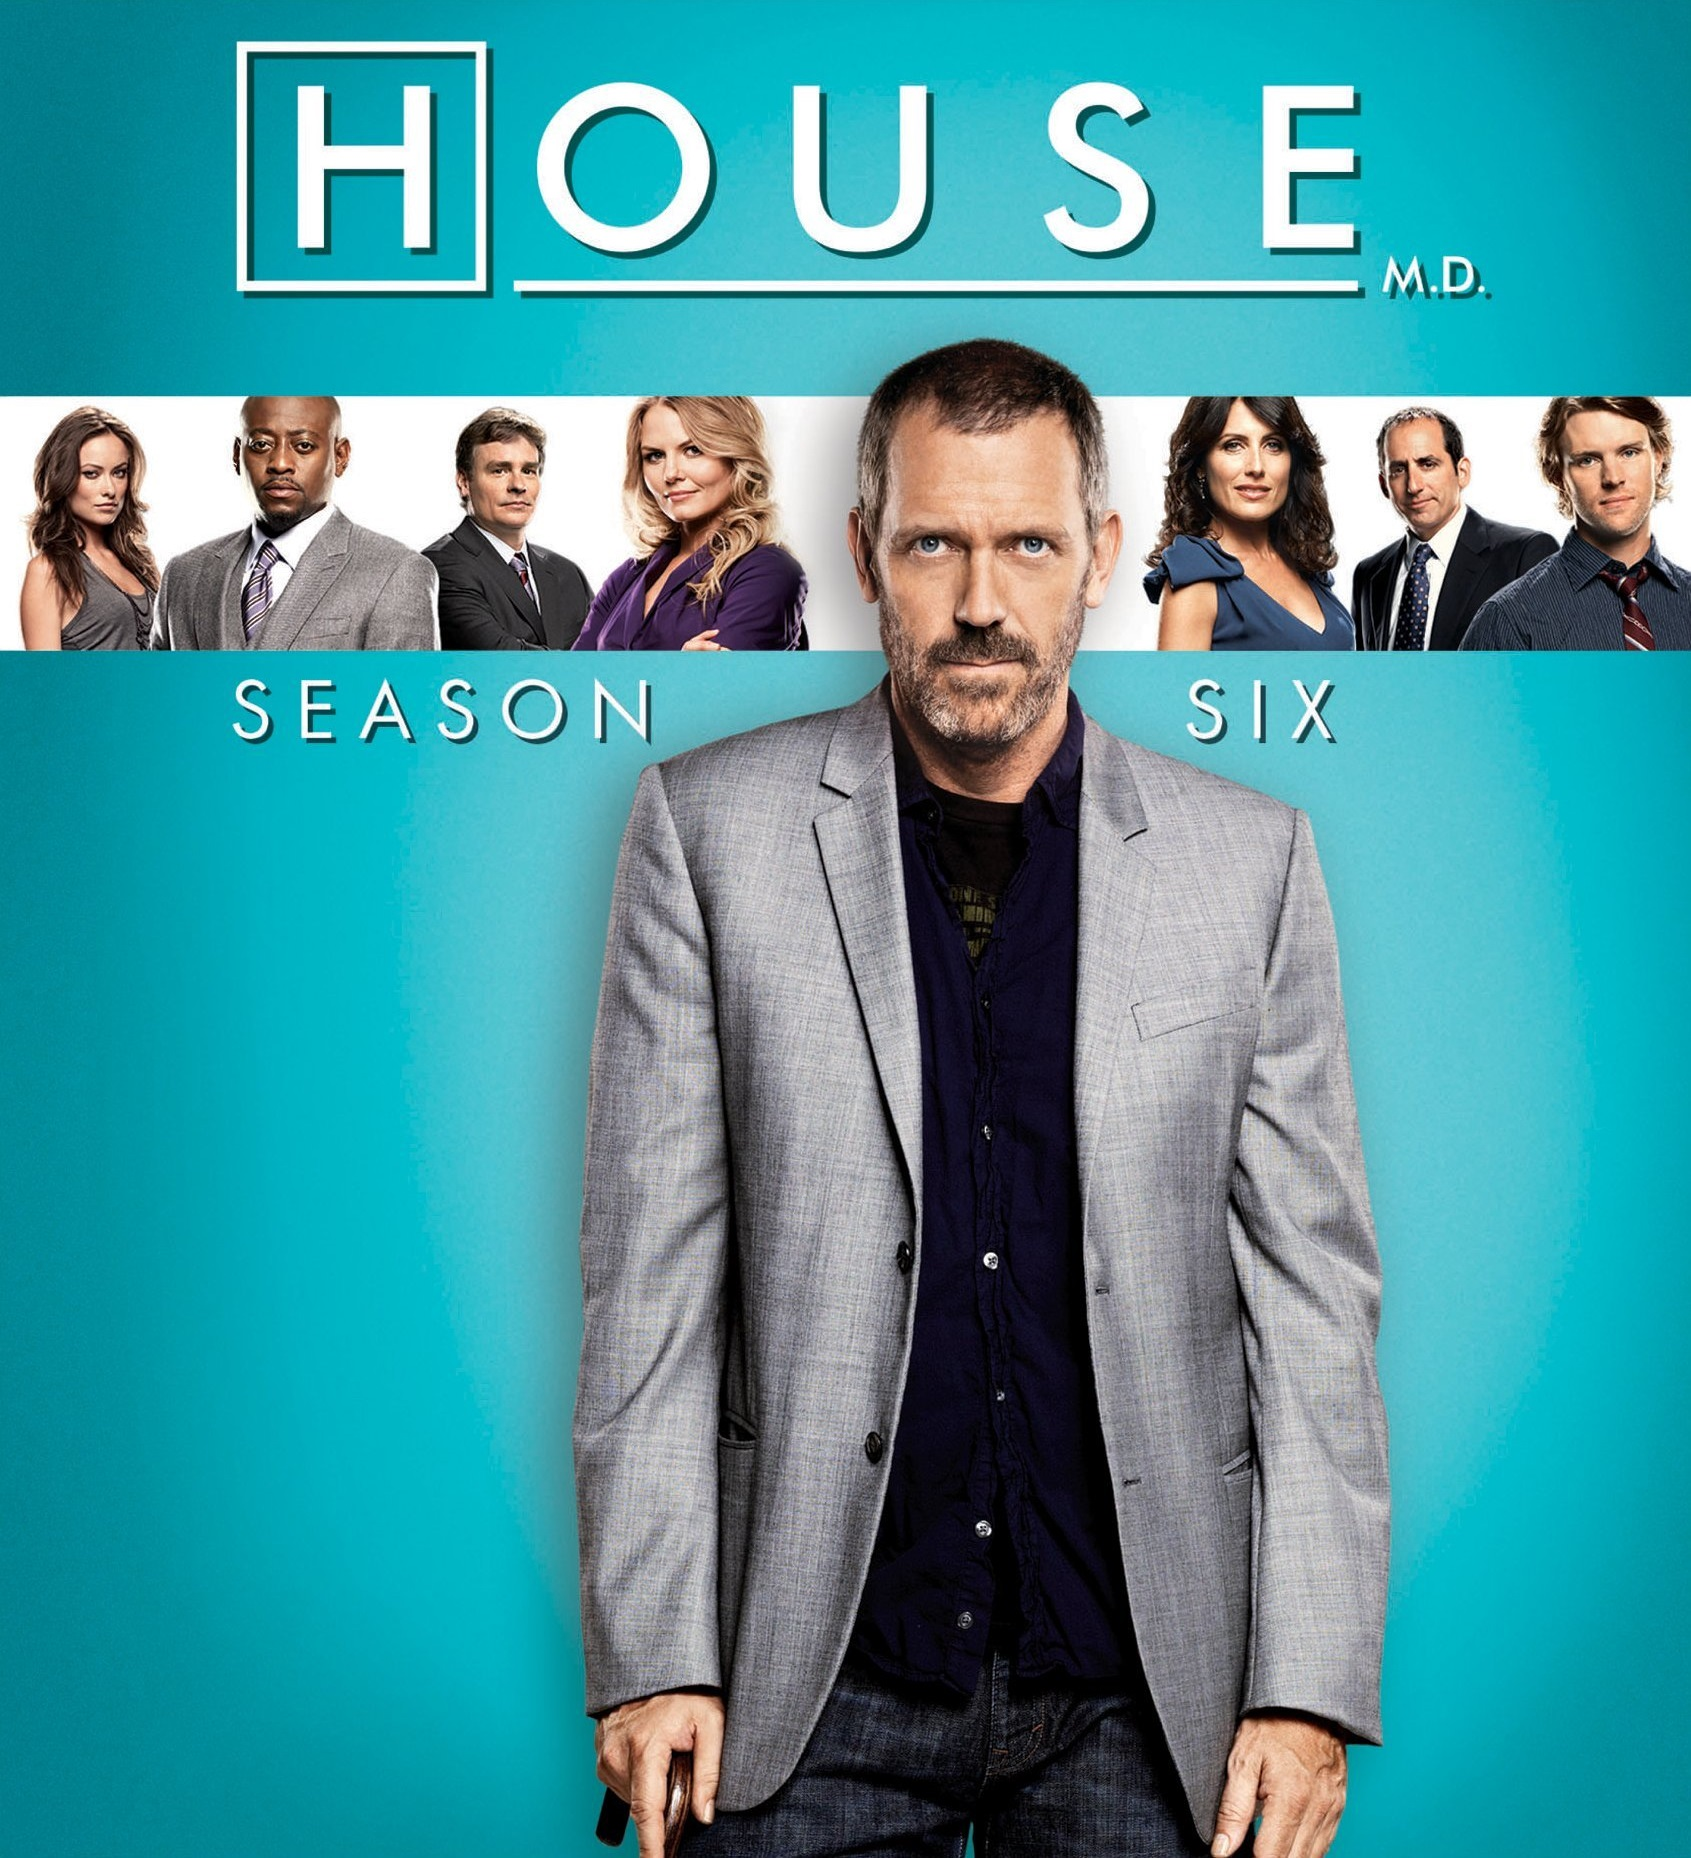 House season 6 28 images house m d season 6 in hd 720p for House md music